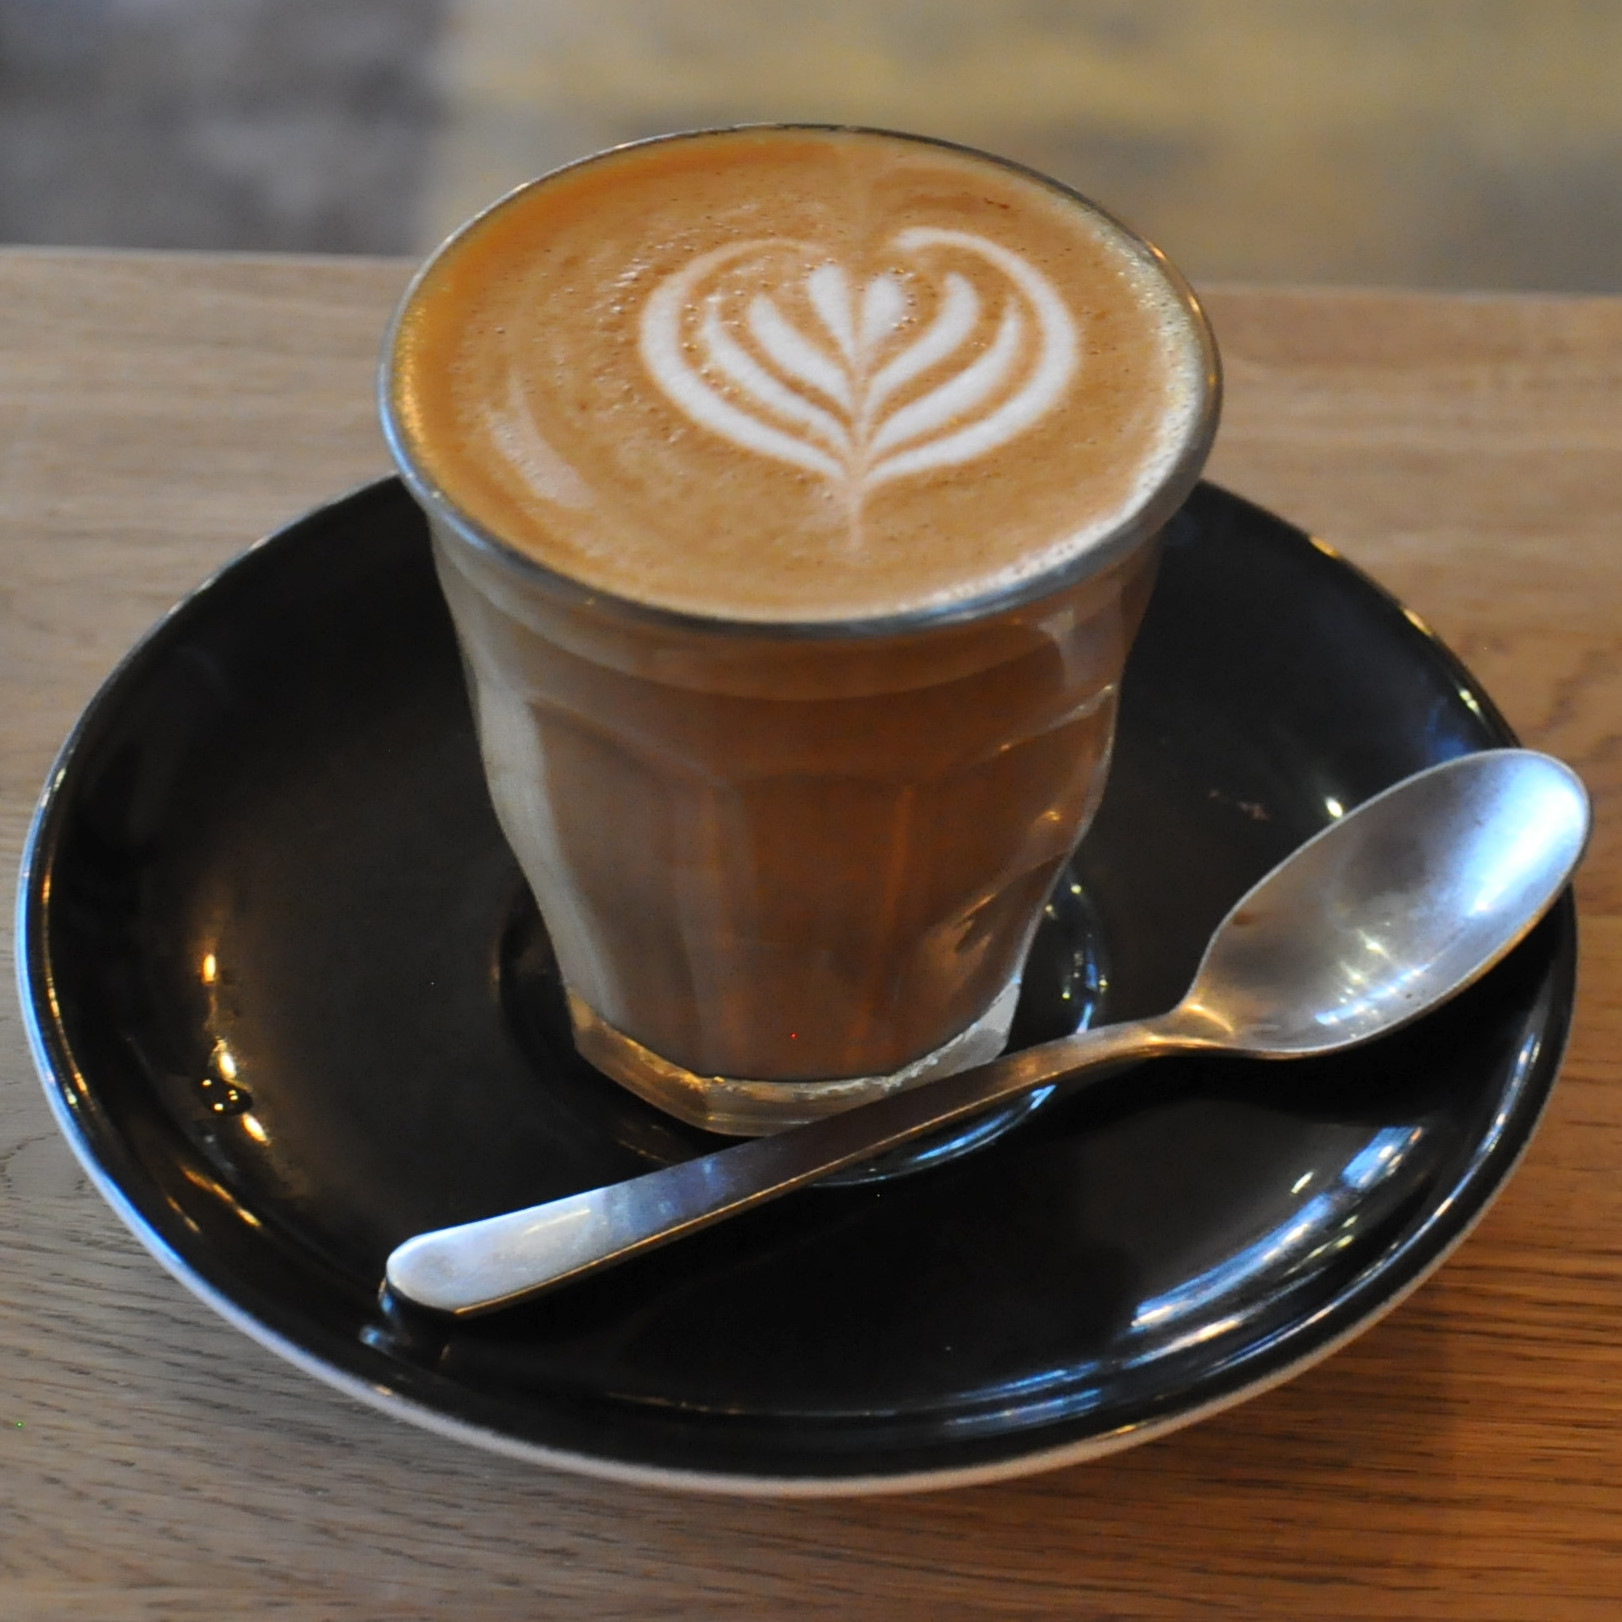 A lovely piccolo, made with Origin's seasonal Resolute blend, and served in a glass at Hoxton North, Royal Parade, Harrogate.